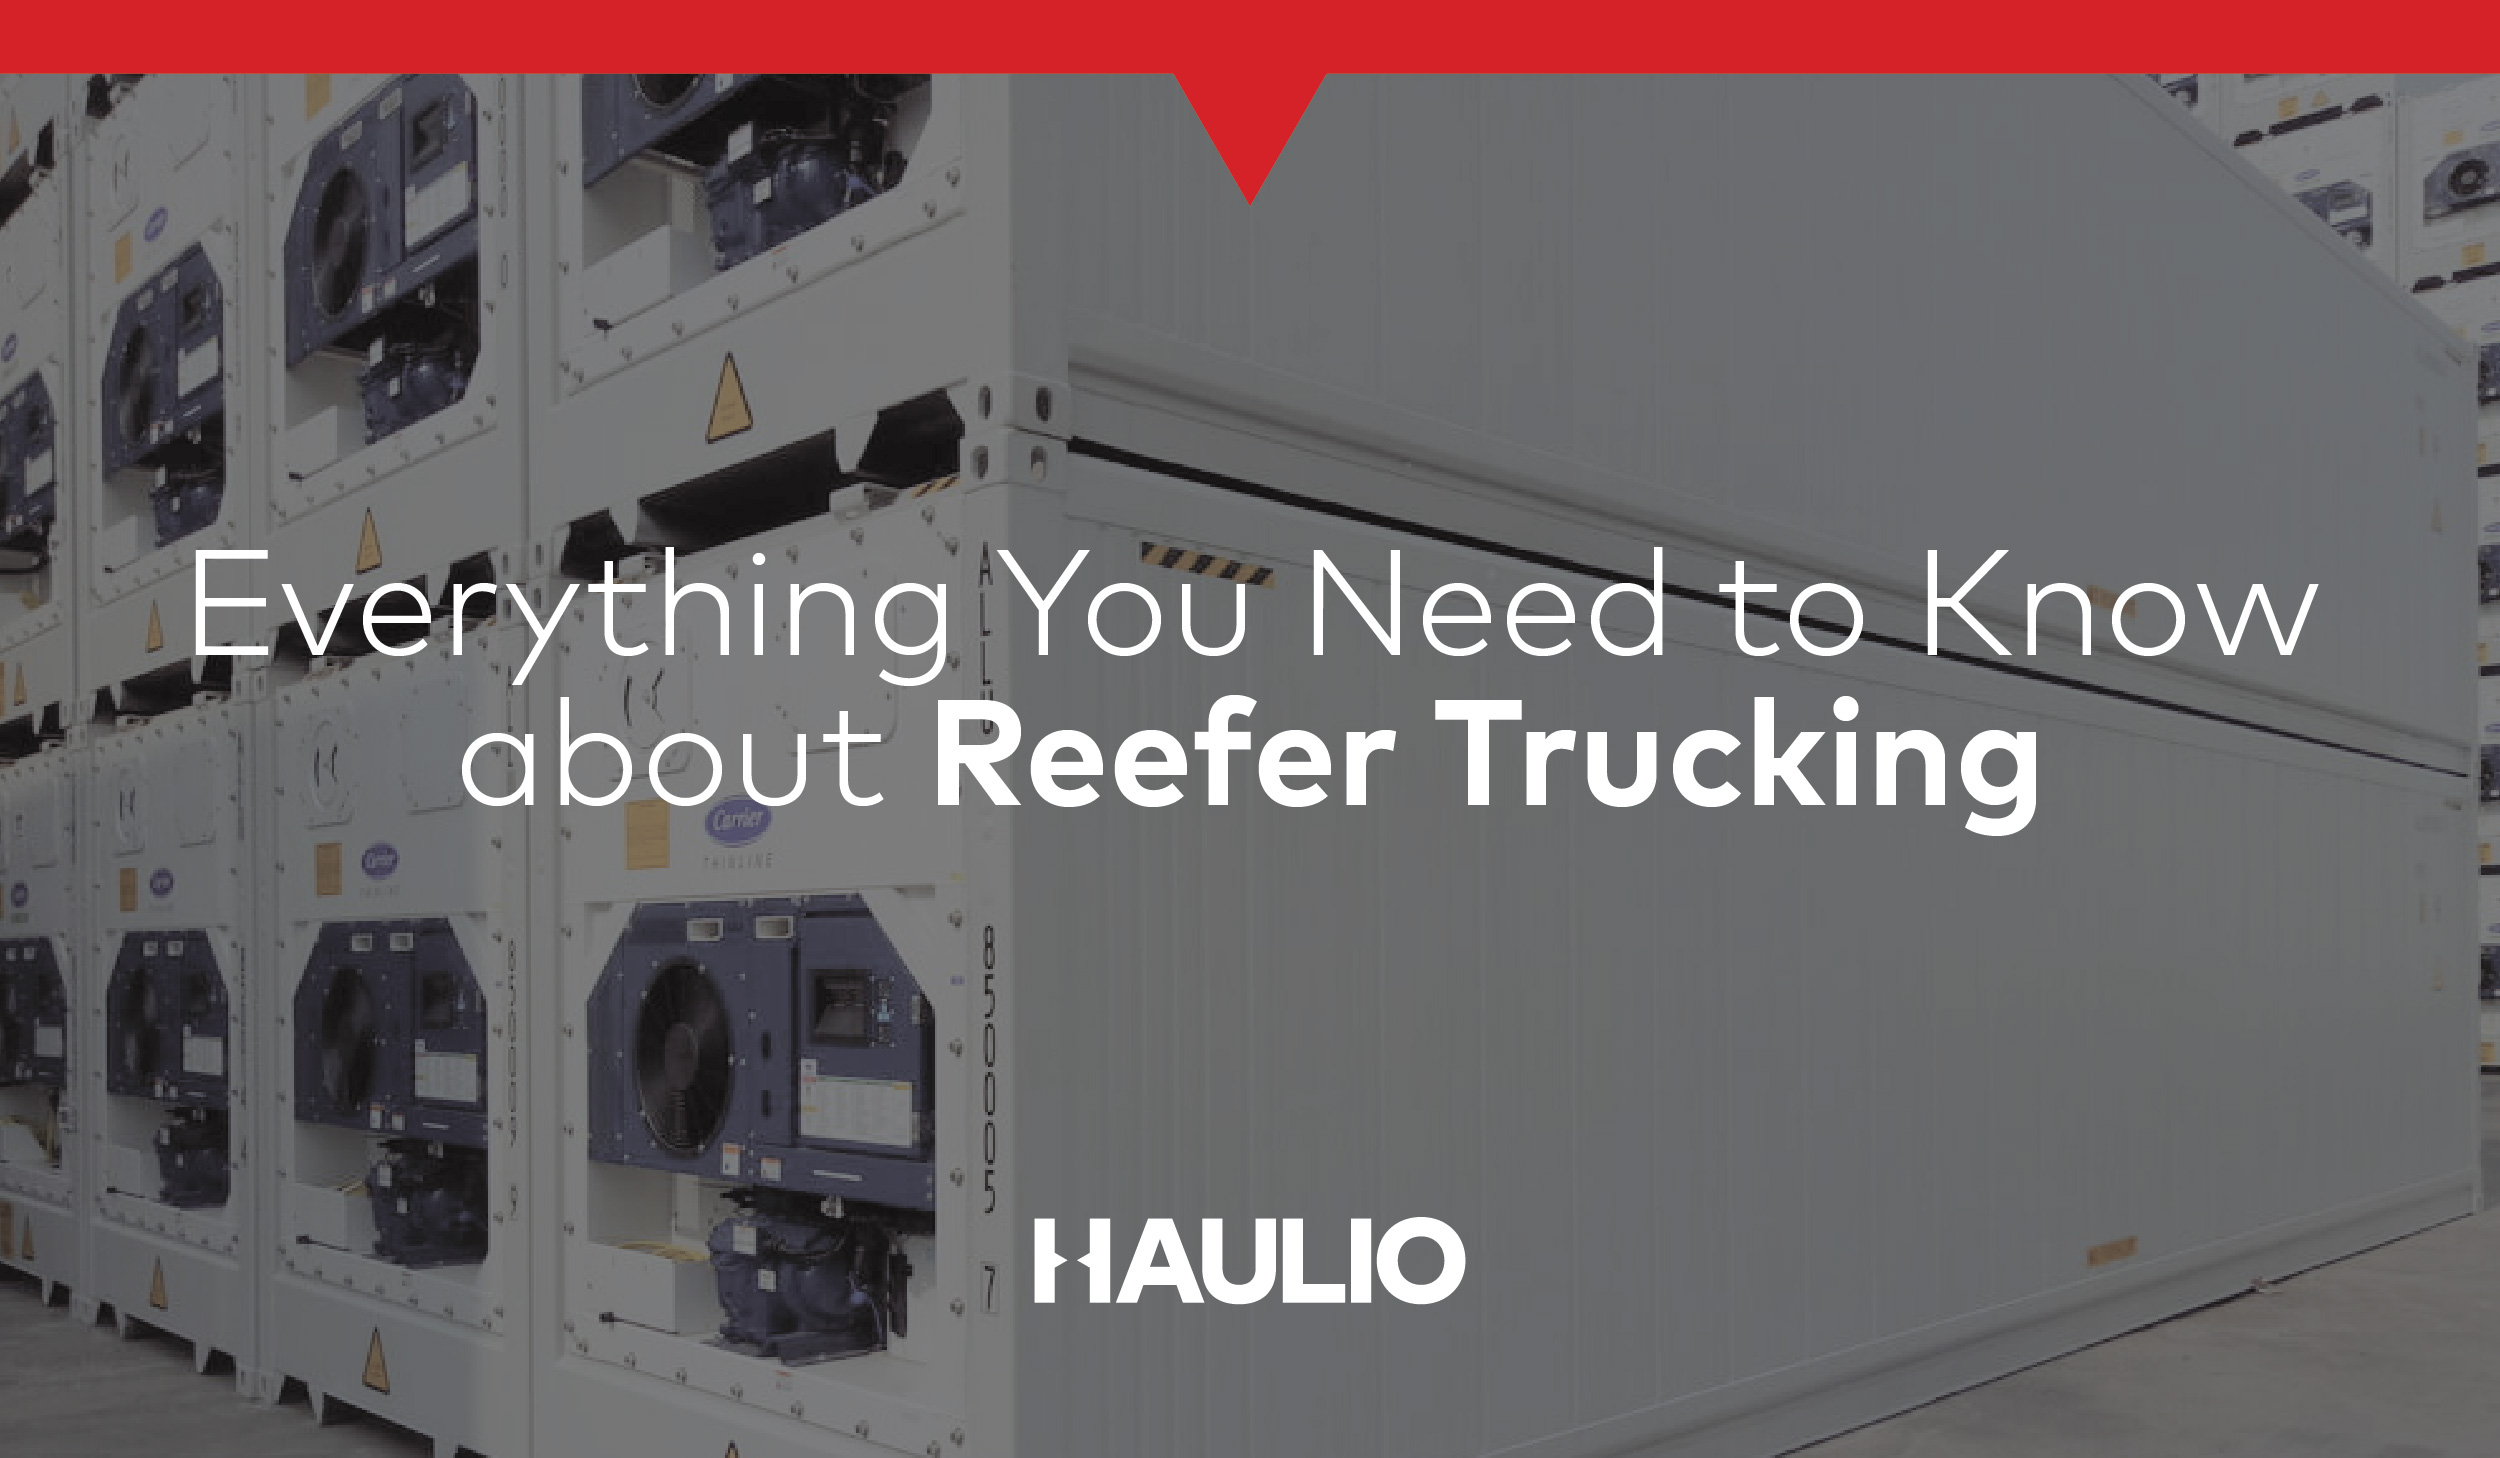 Everything You Need to Know about Reefer Trucking